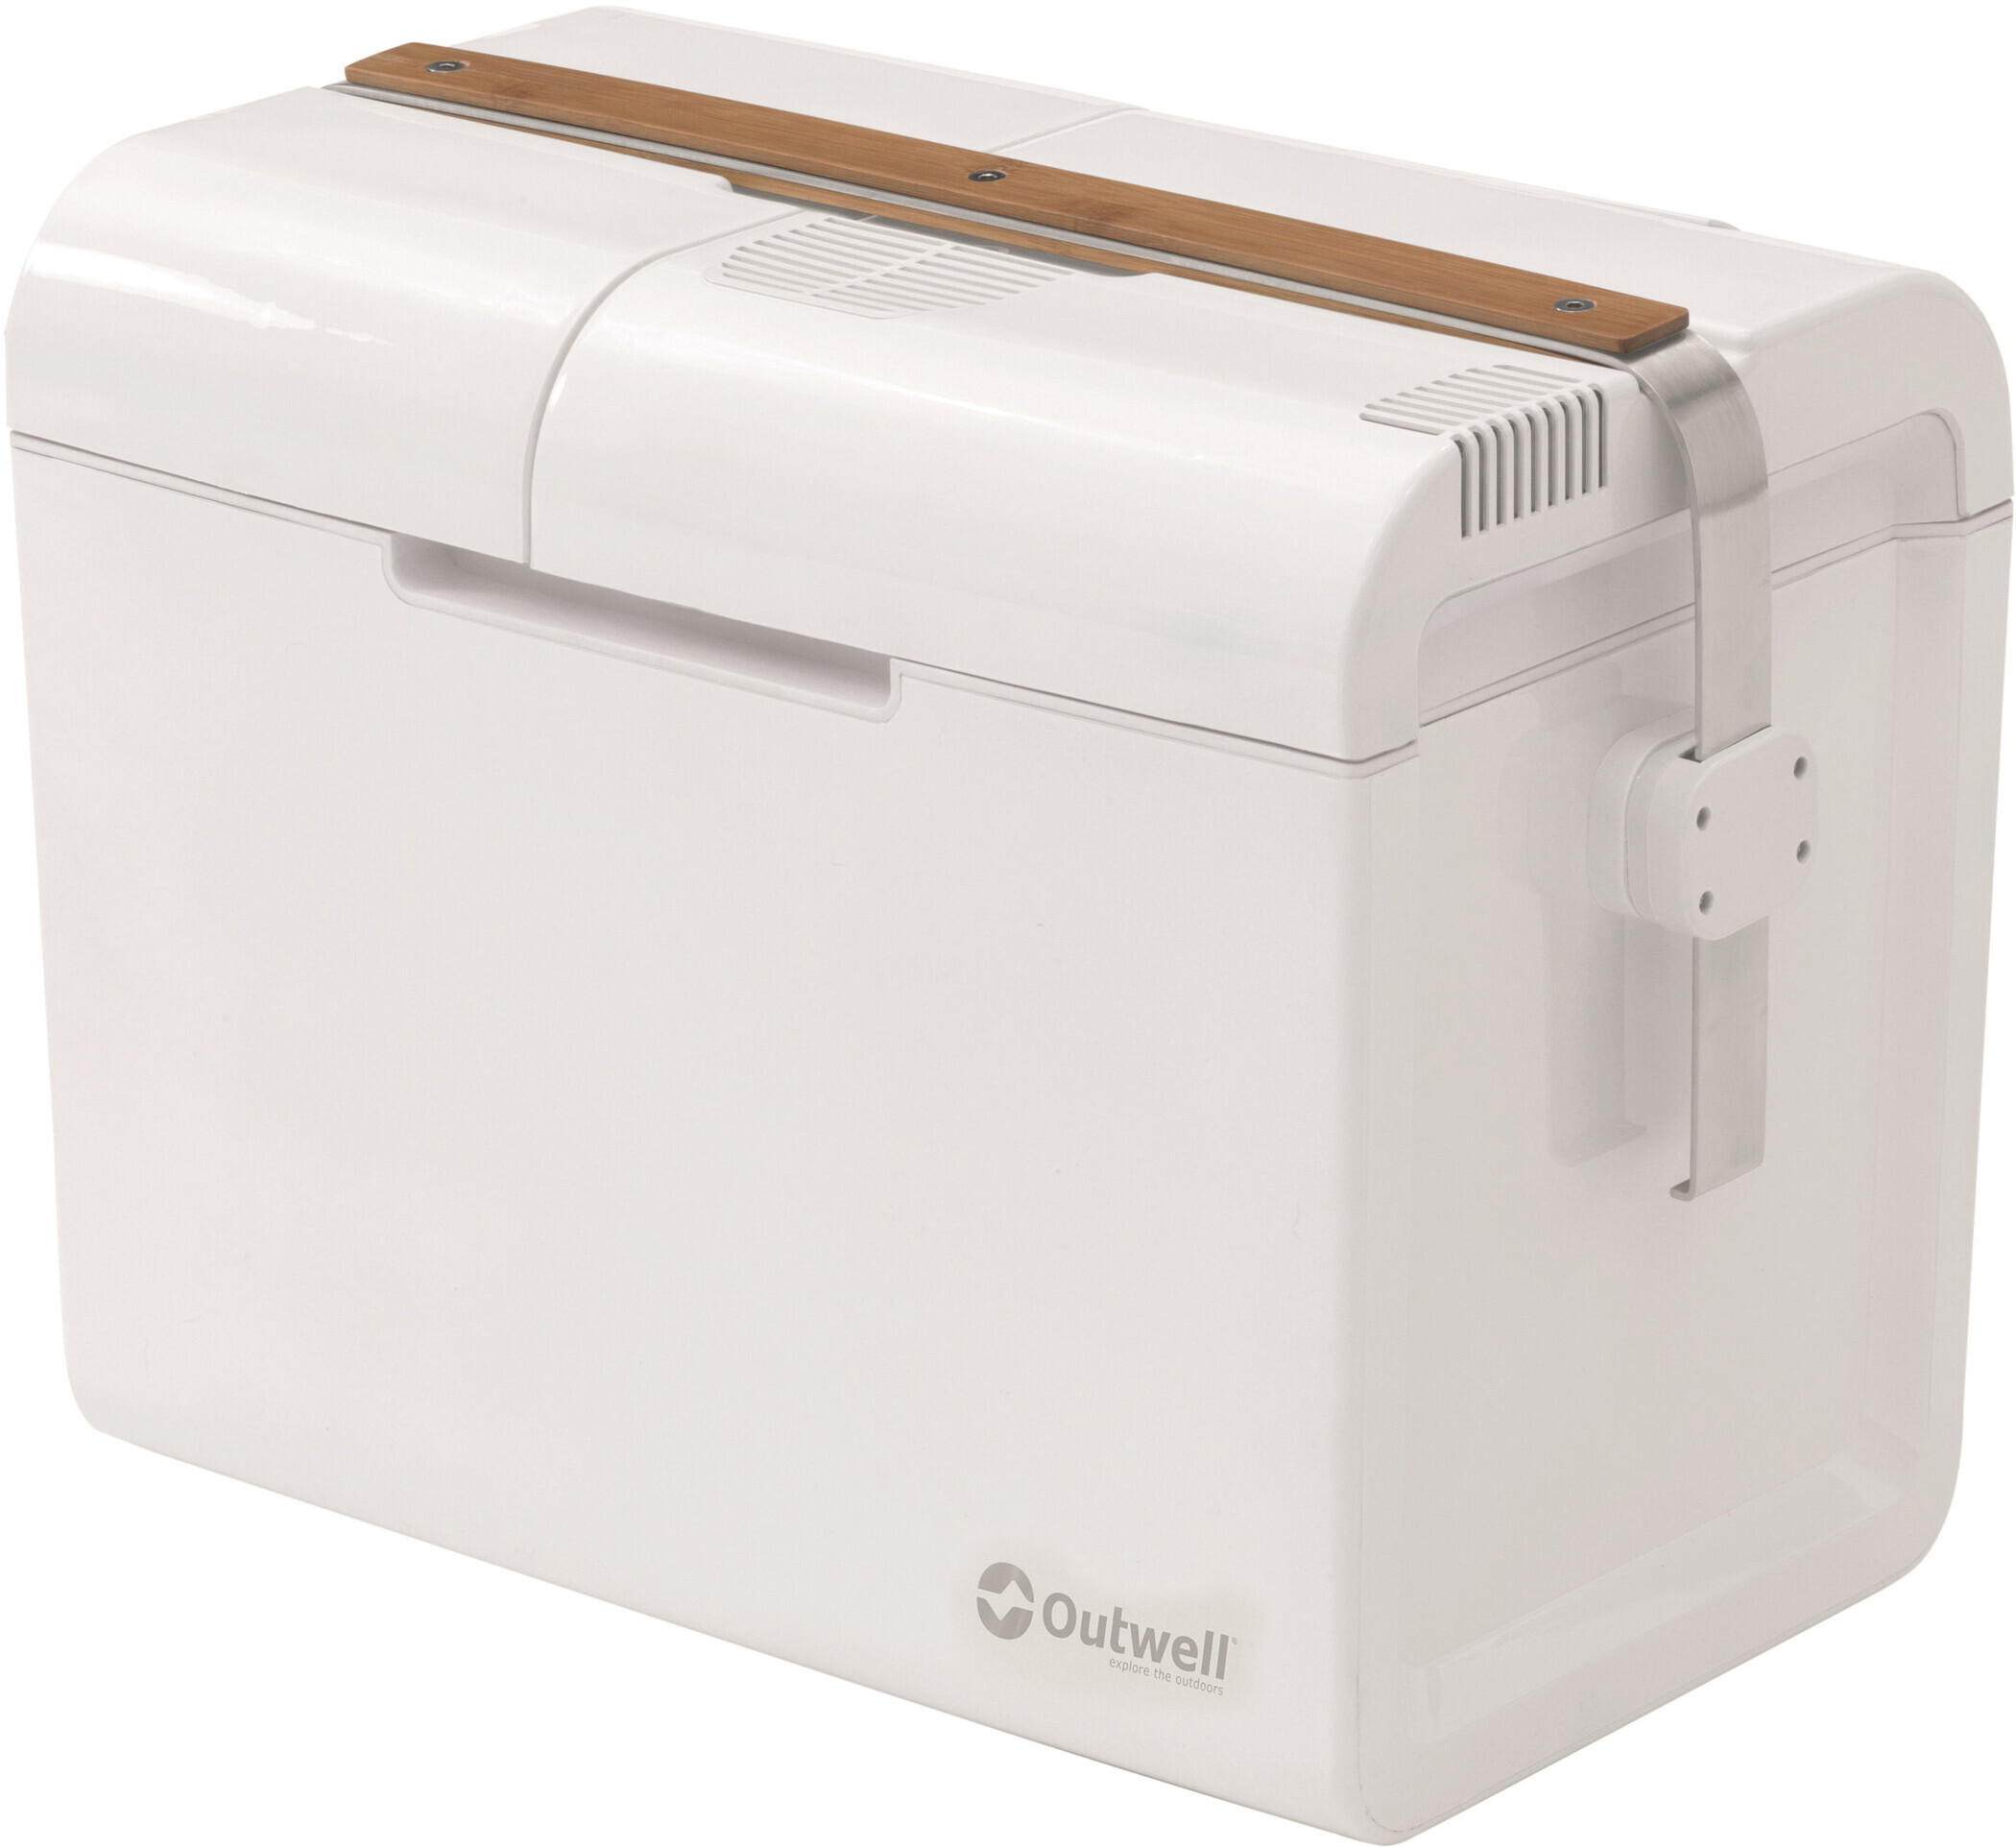 Outwell Deep Cool 28L Coolbox